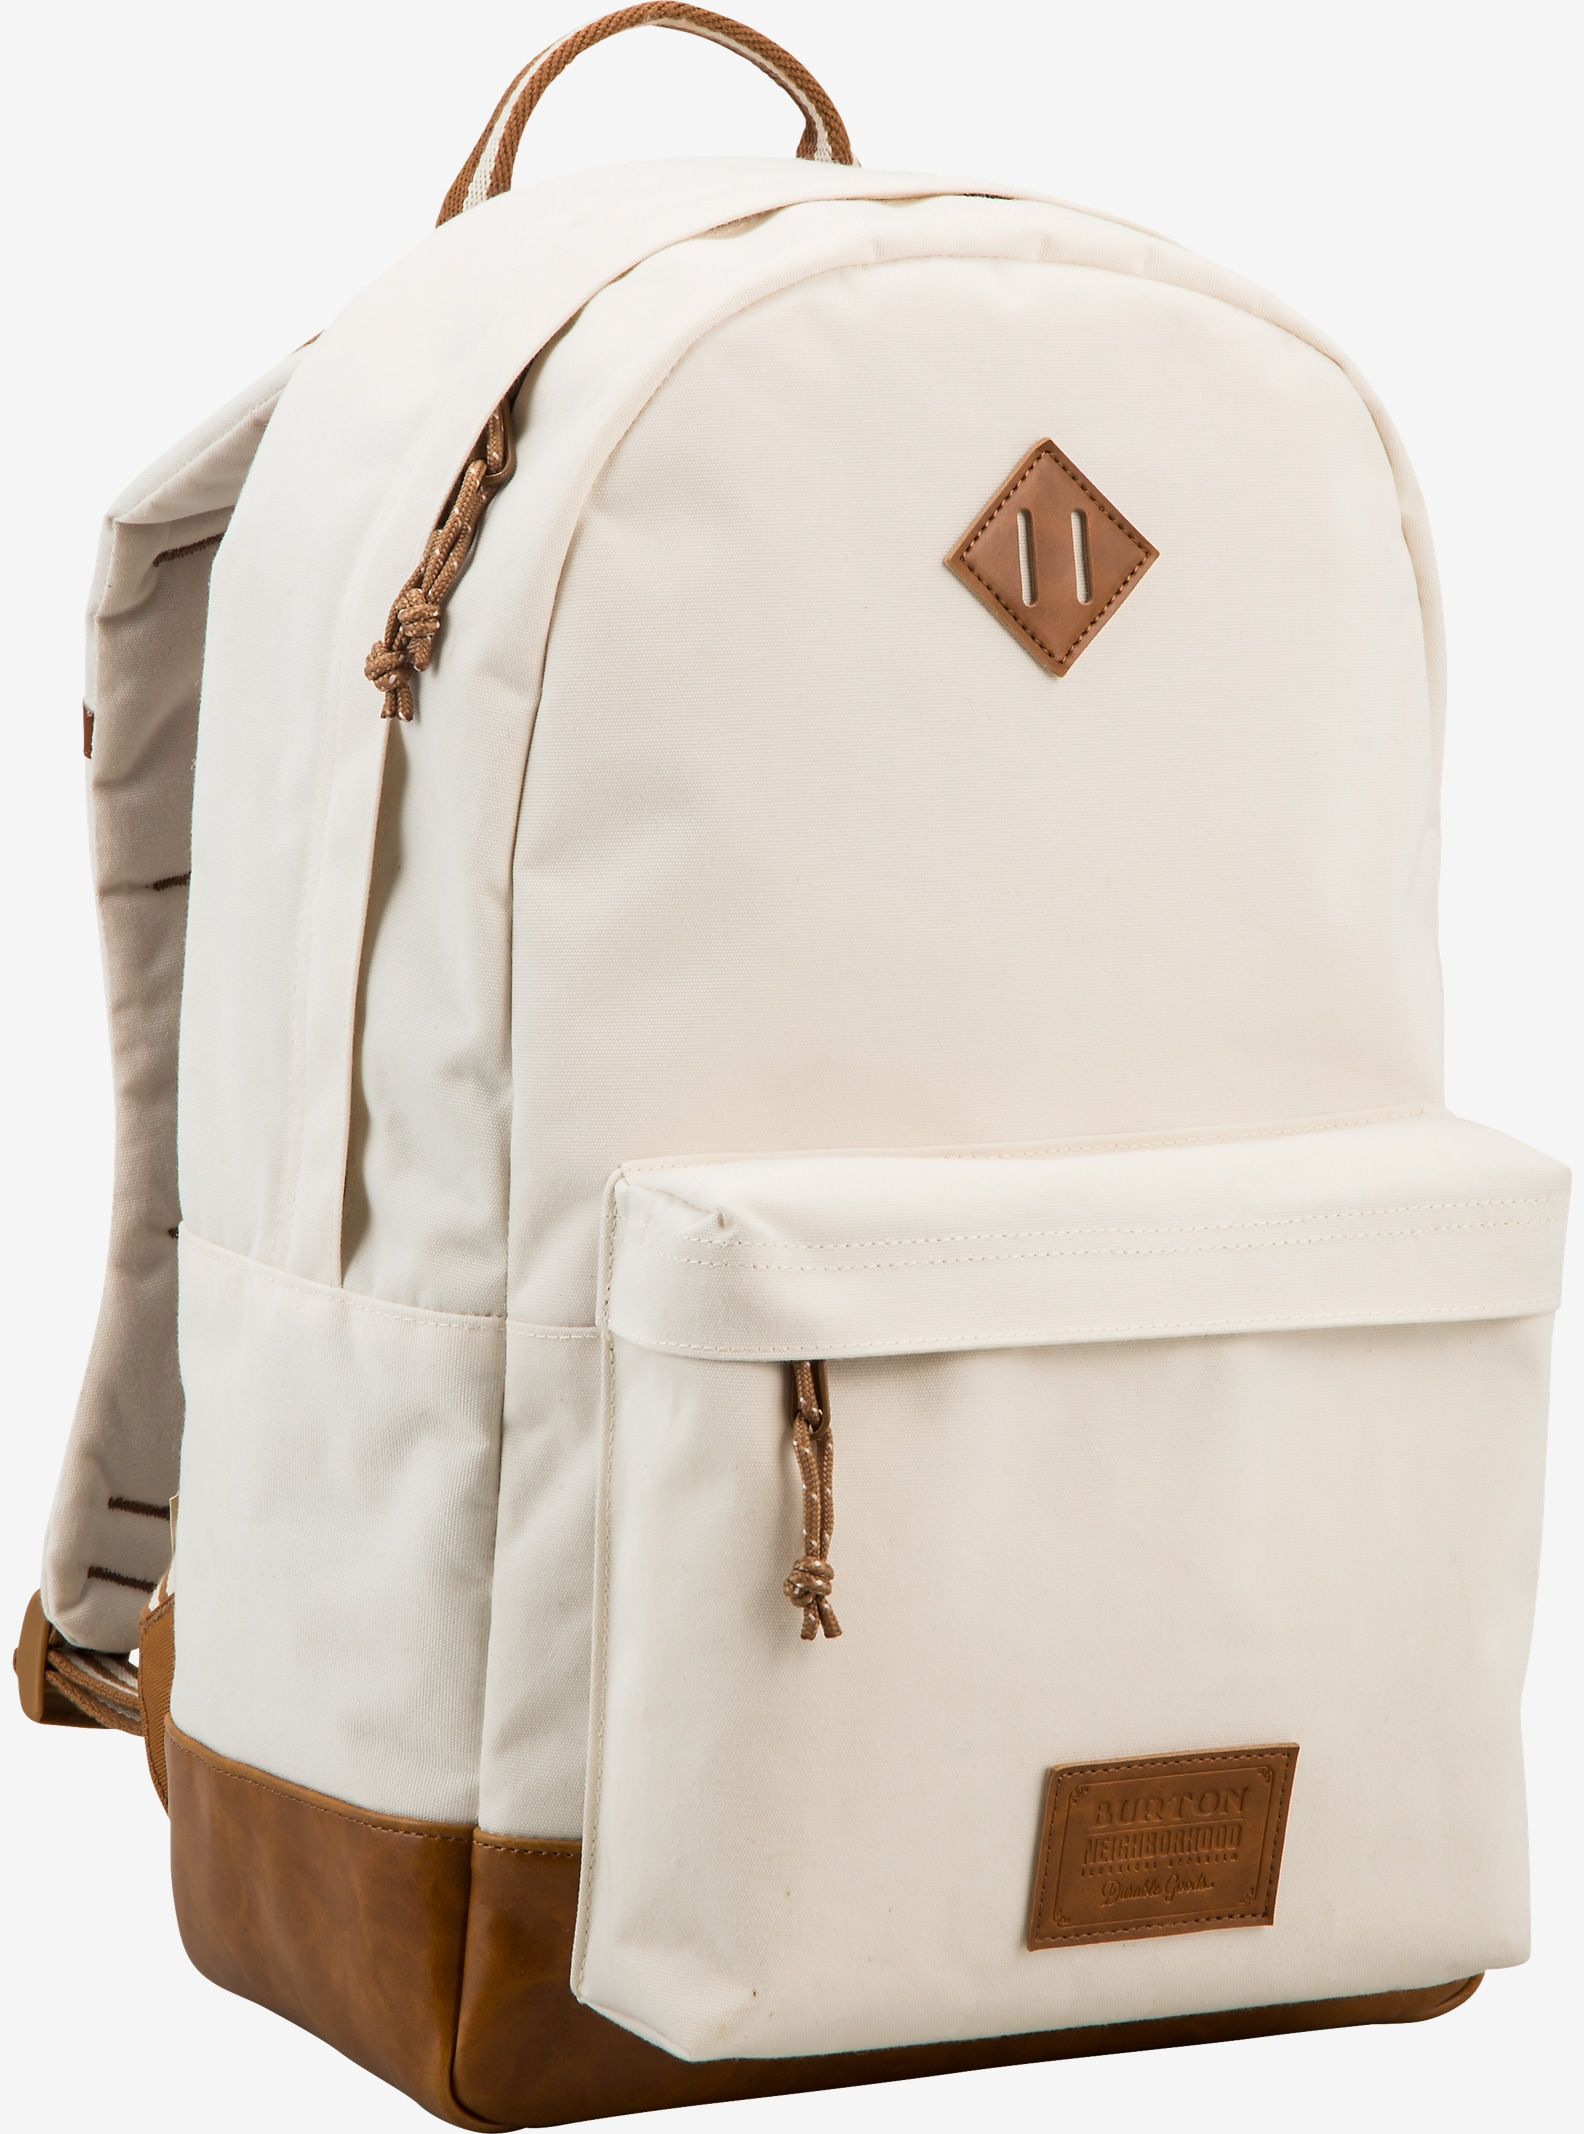 BURTON x NEIGHBORHOOD Kettle Pack shown in Natural